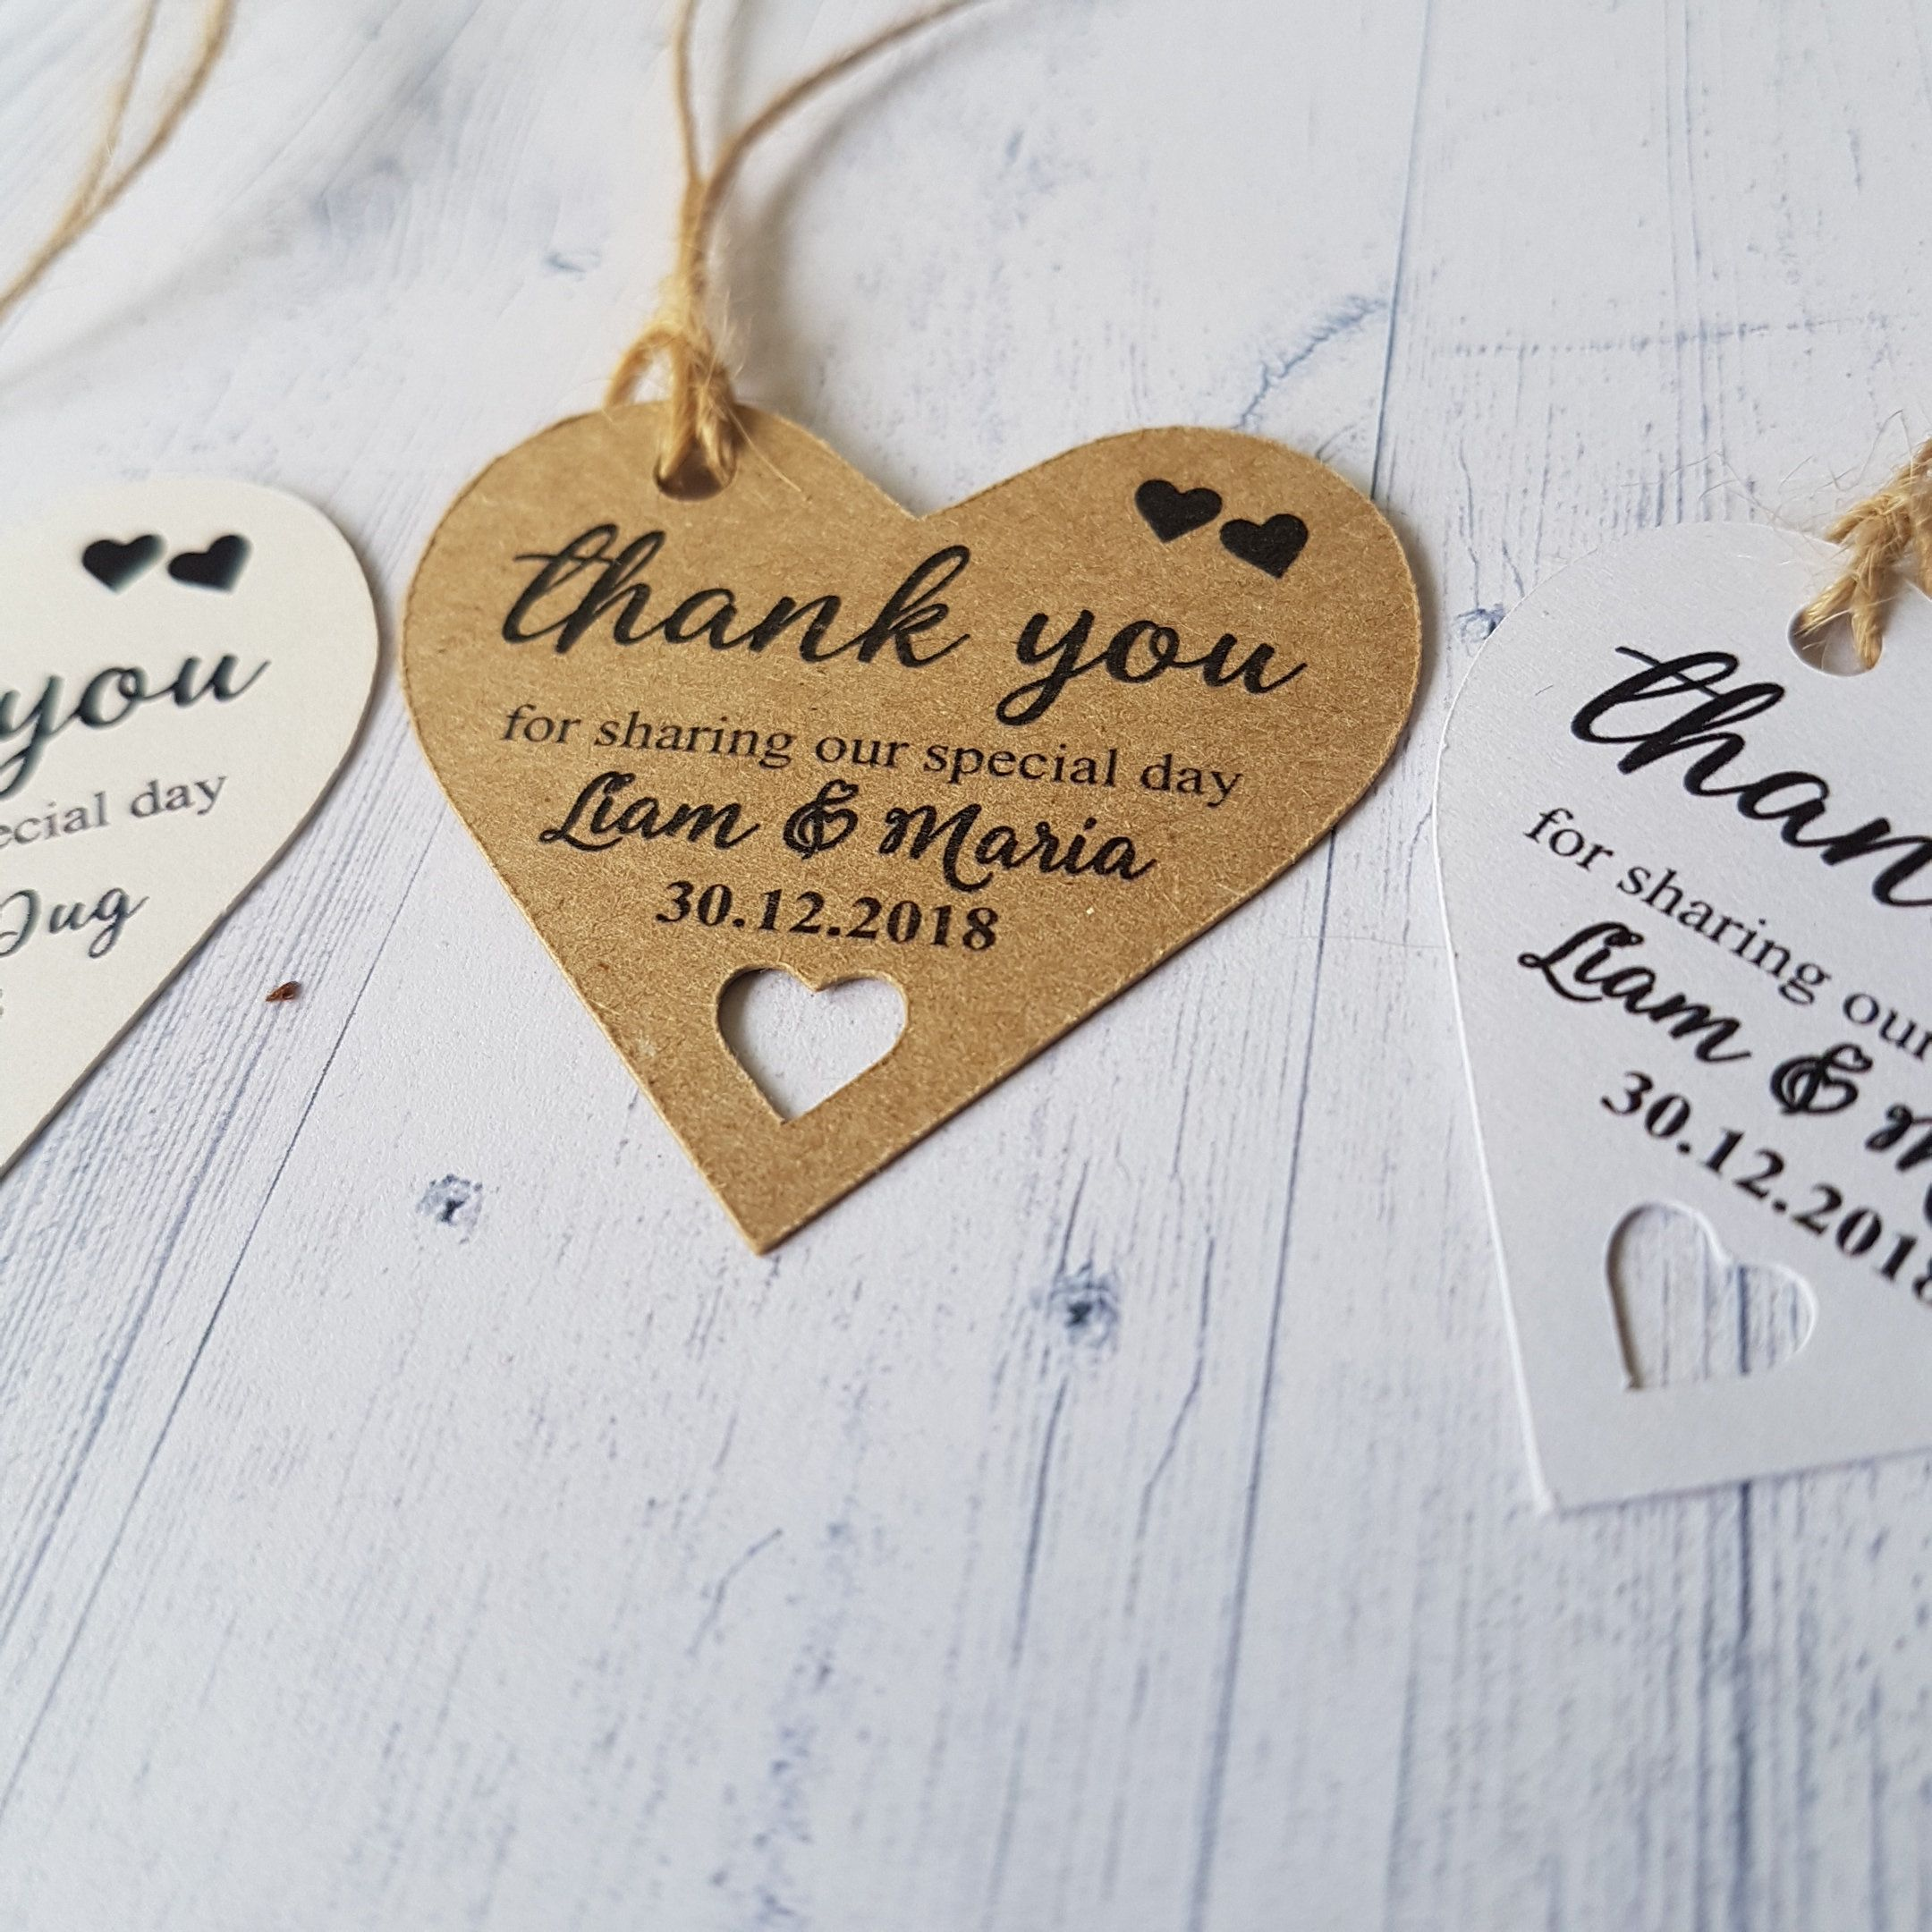 Cute Heart Shaped Tags for Wedding Favors, Tags with String ...